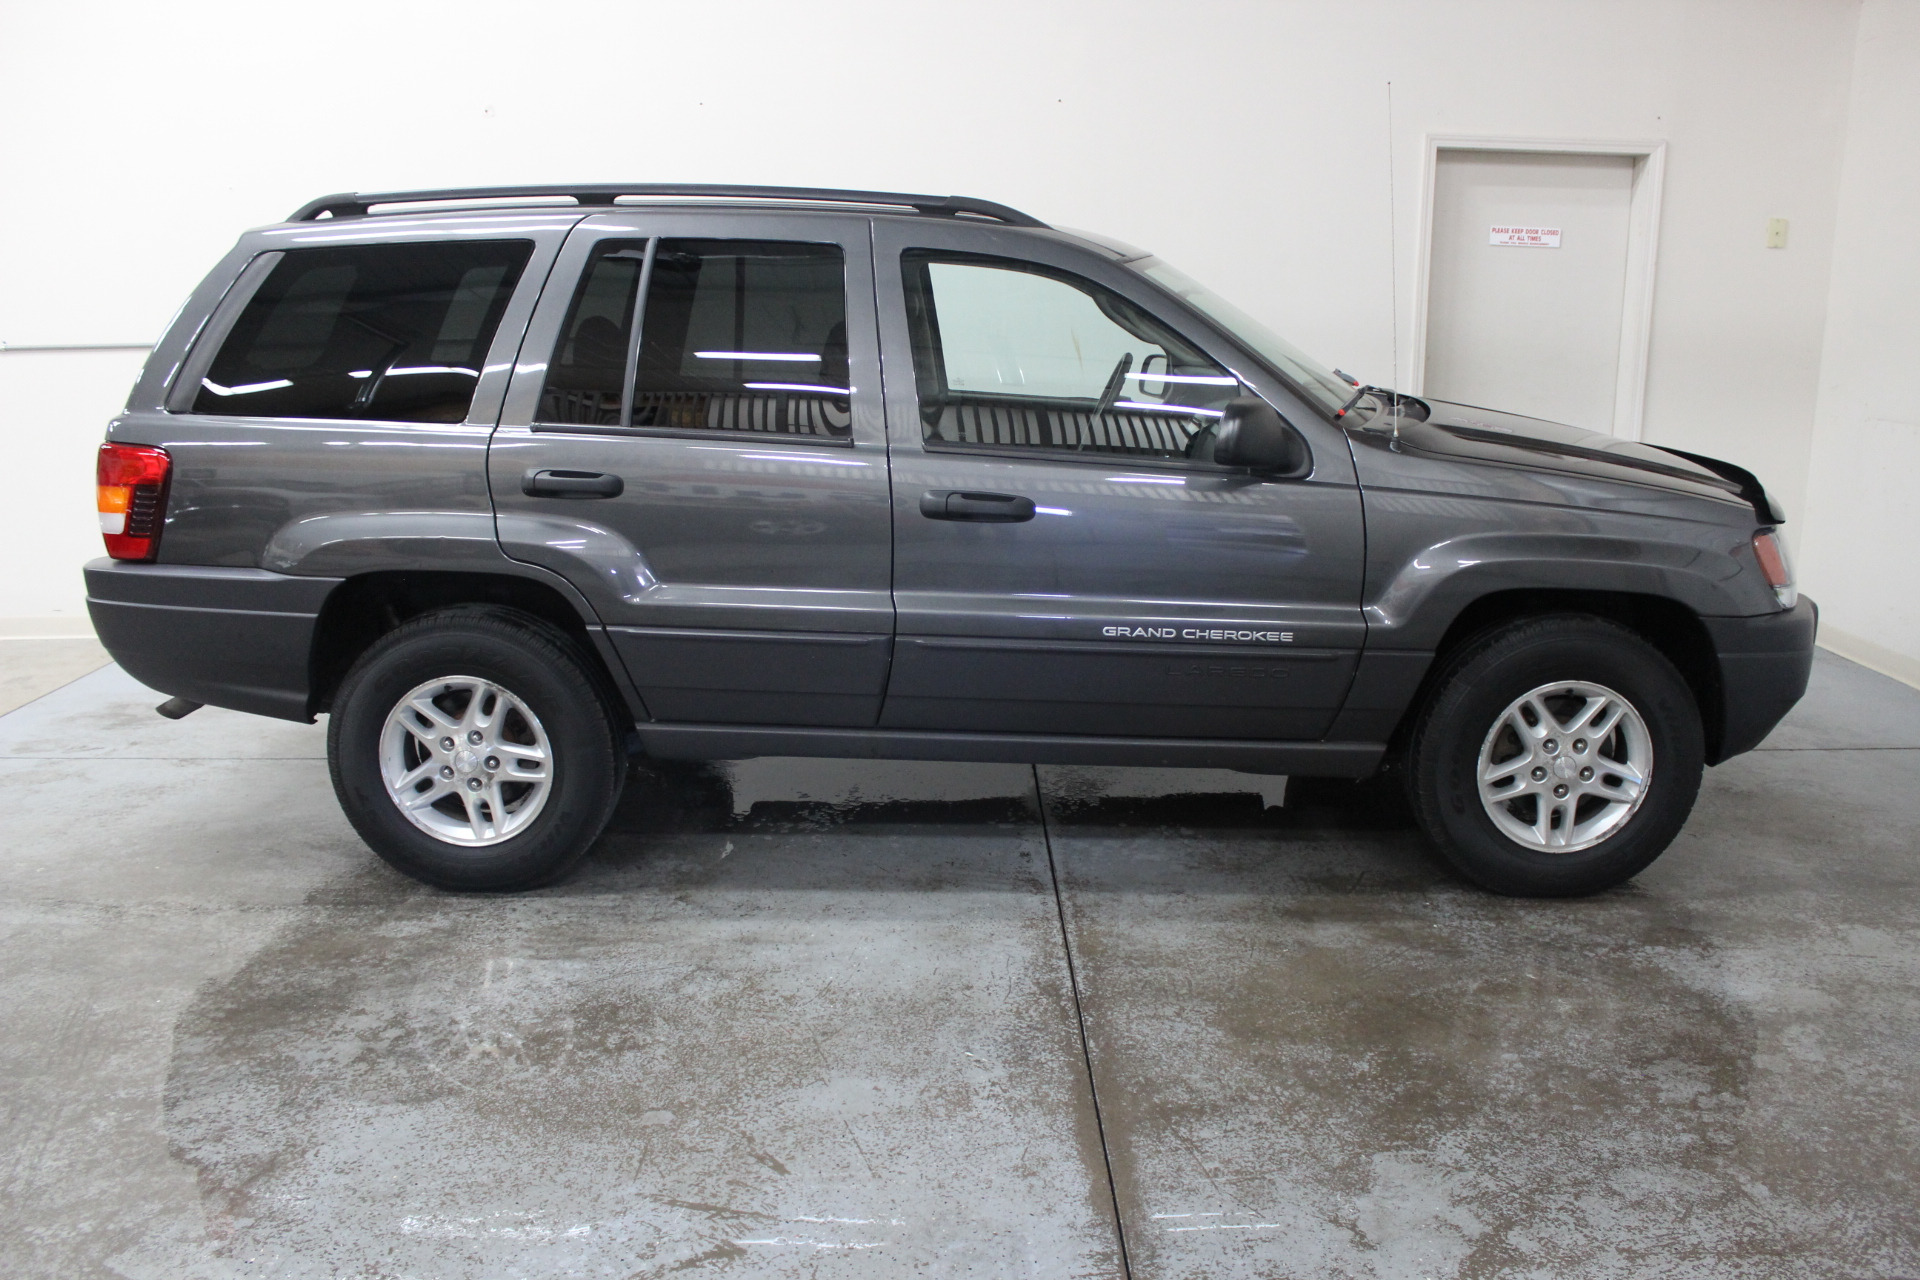 2004 jeep grand cherokee laredo biscayne auto sales pre owned dealership ontario ny. Black Bedroom Furniture Sets. Home Design Ideas